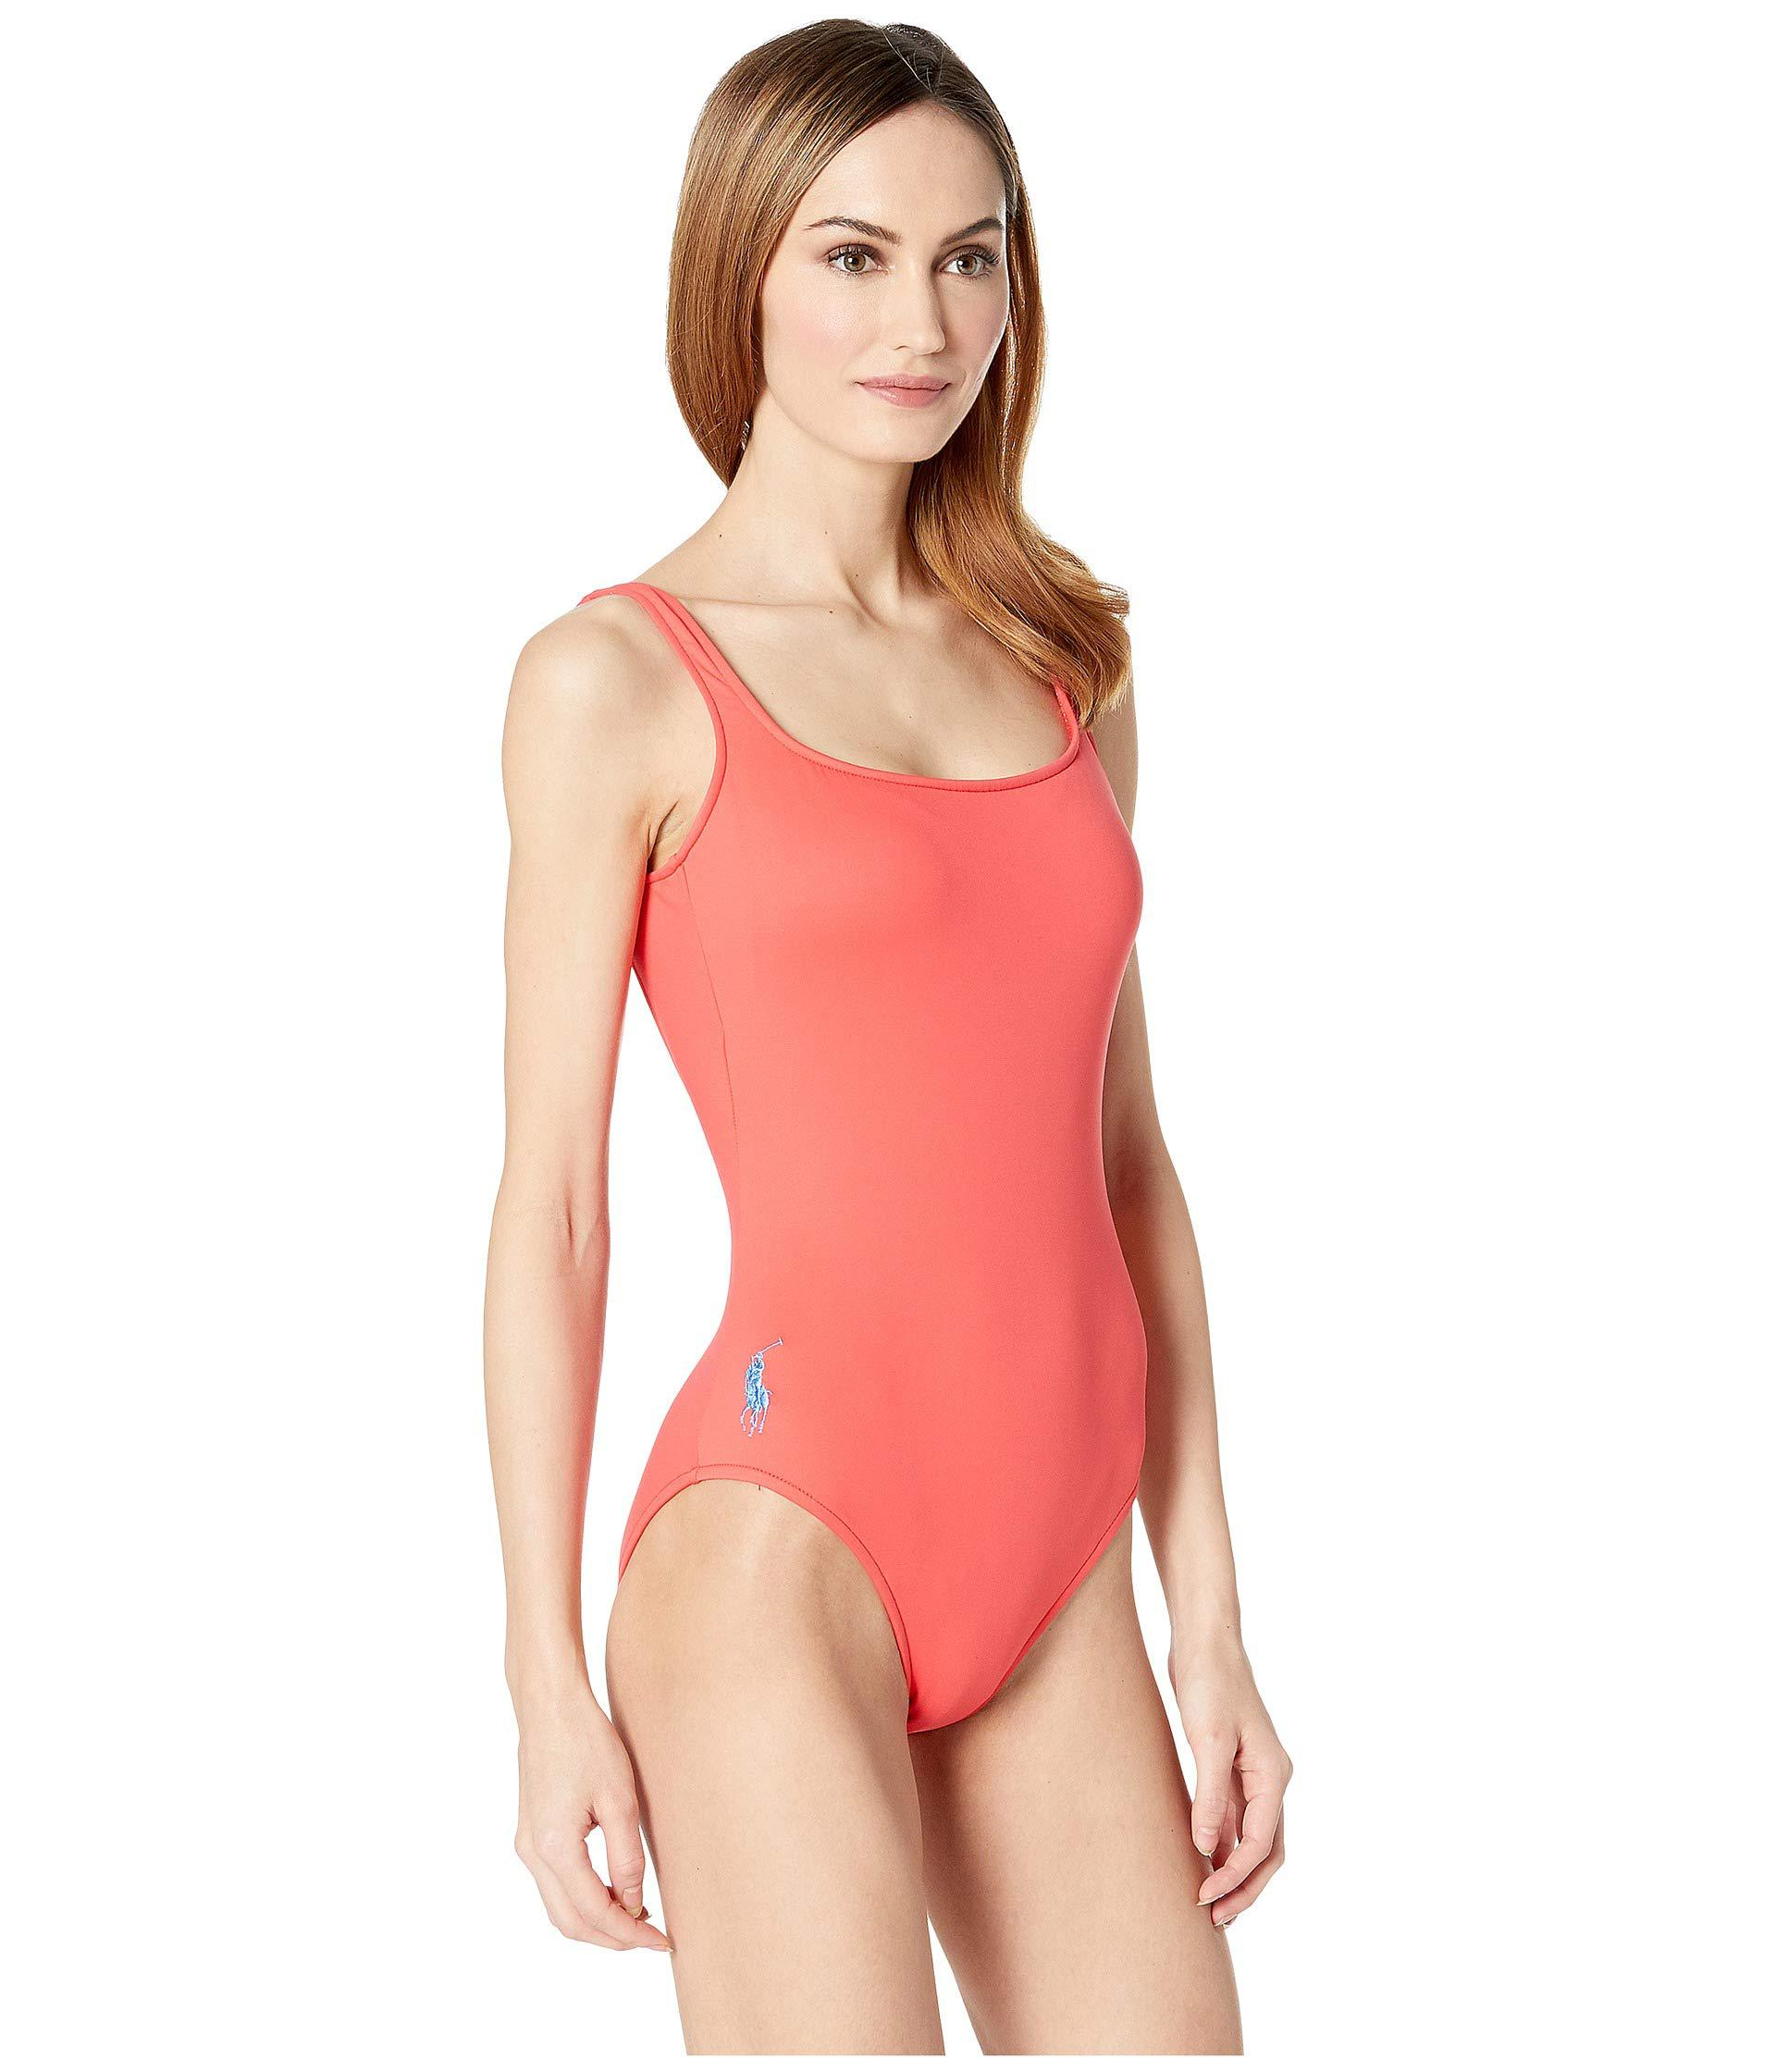 a7e6a5bed191c Lyst - Polo Ralph Lauren Modern Solid Martinique One-piece (pool) Women s  Swimsuits One Piece in Red